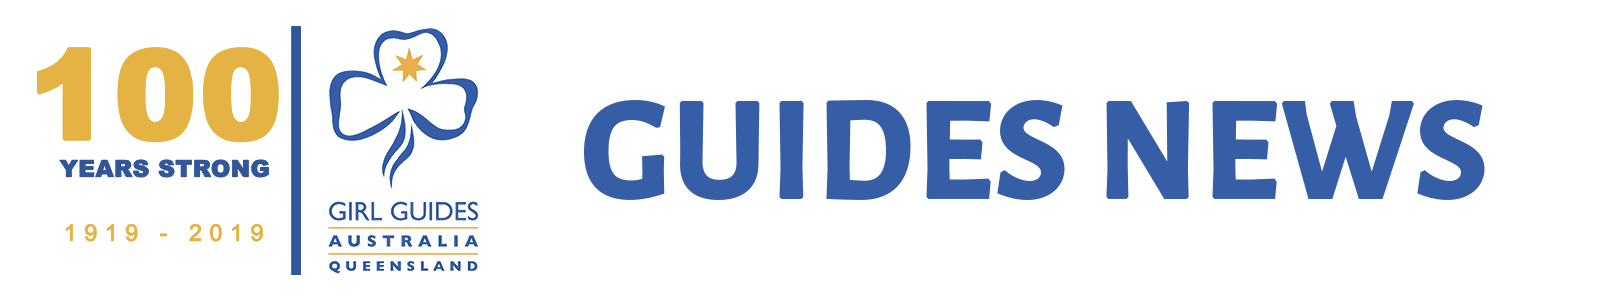 Guides News